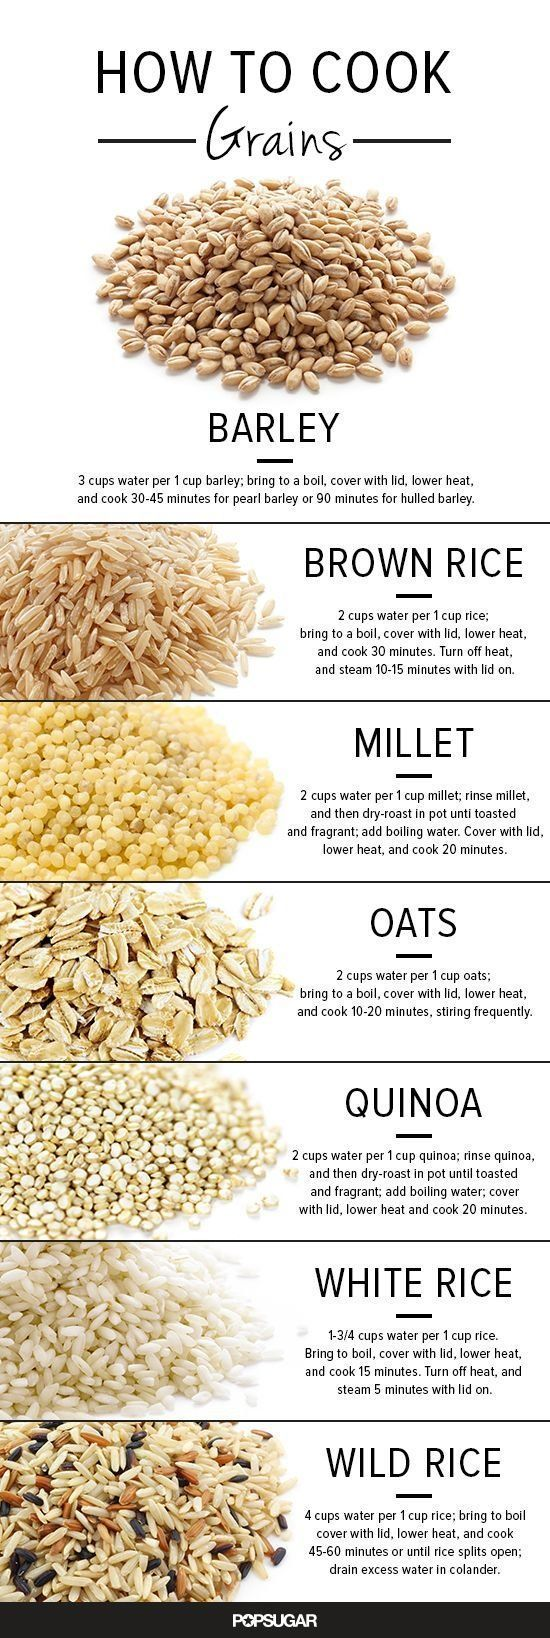 hight resolution of brown rice provides superior nutrition value over white rice